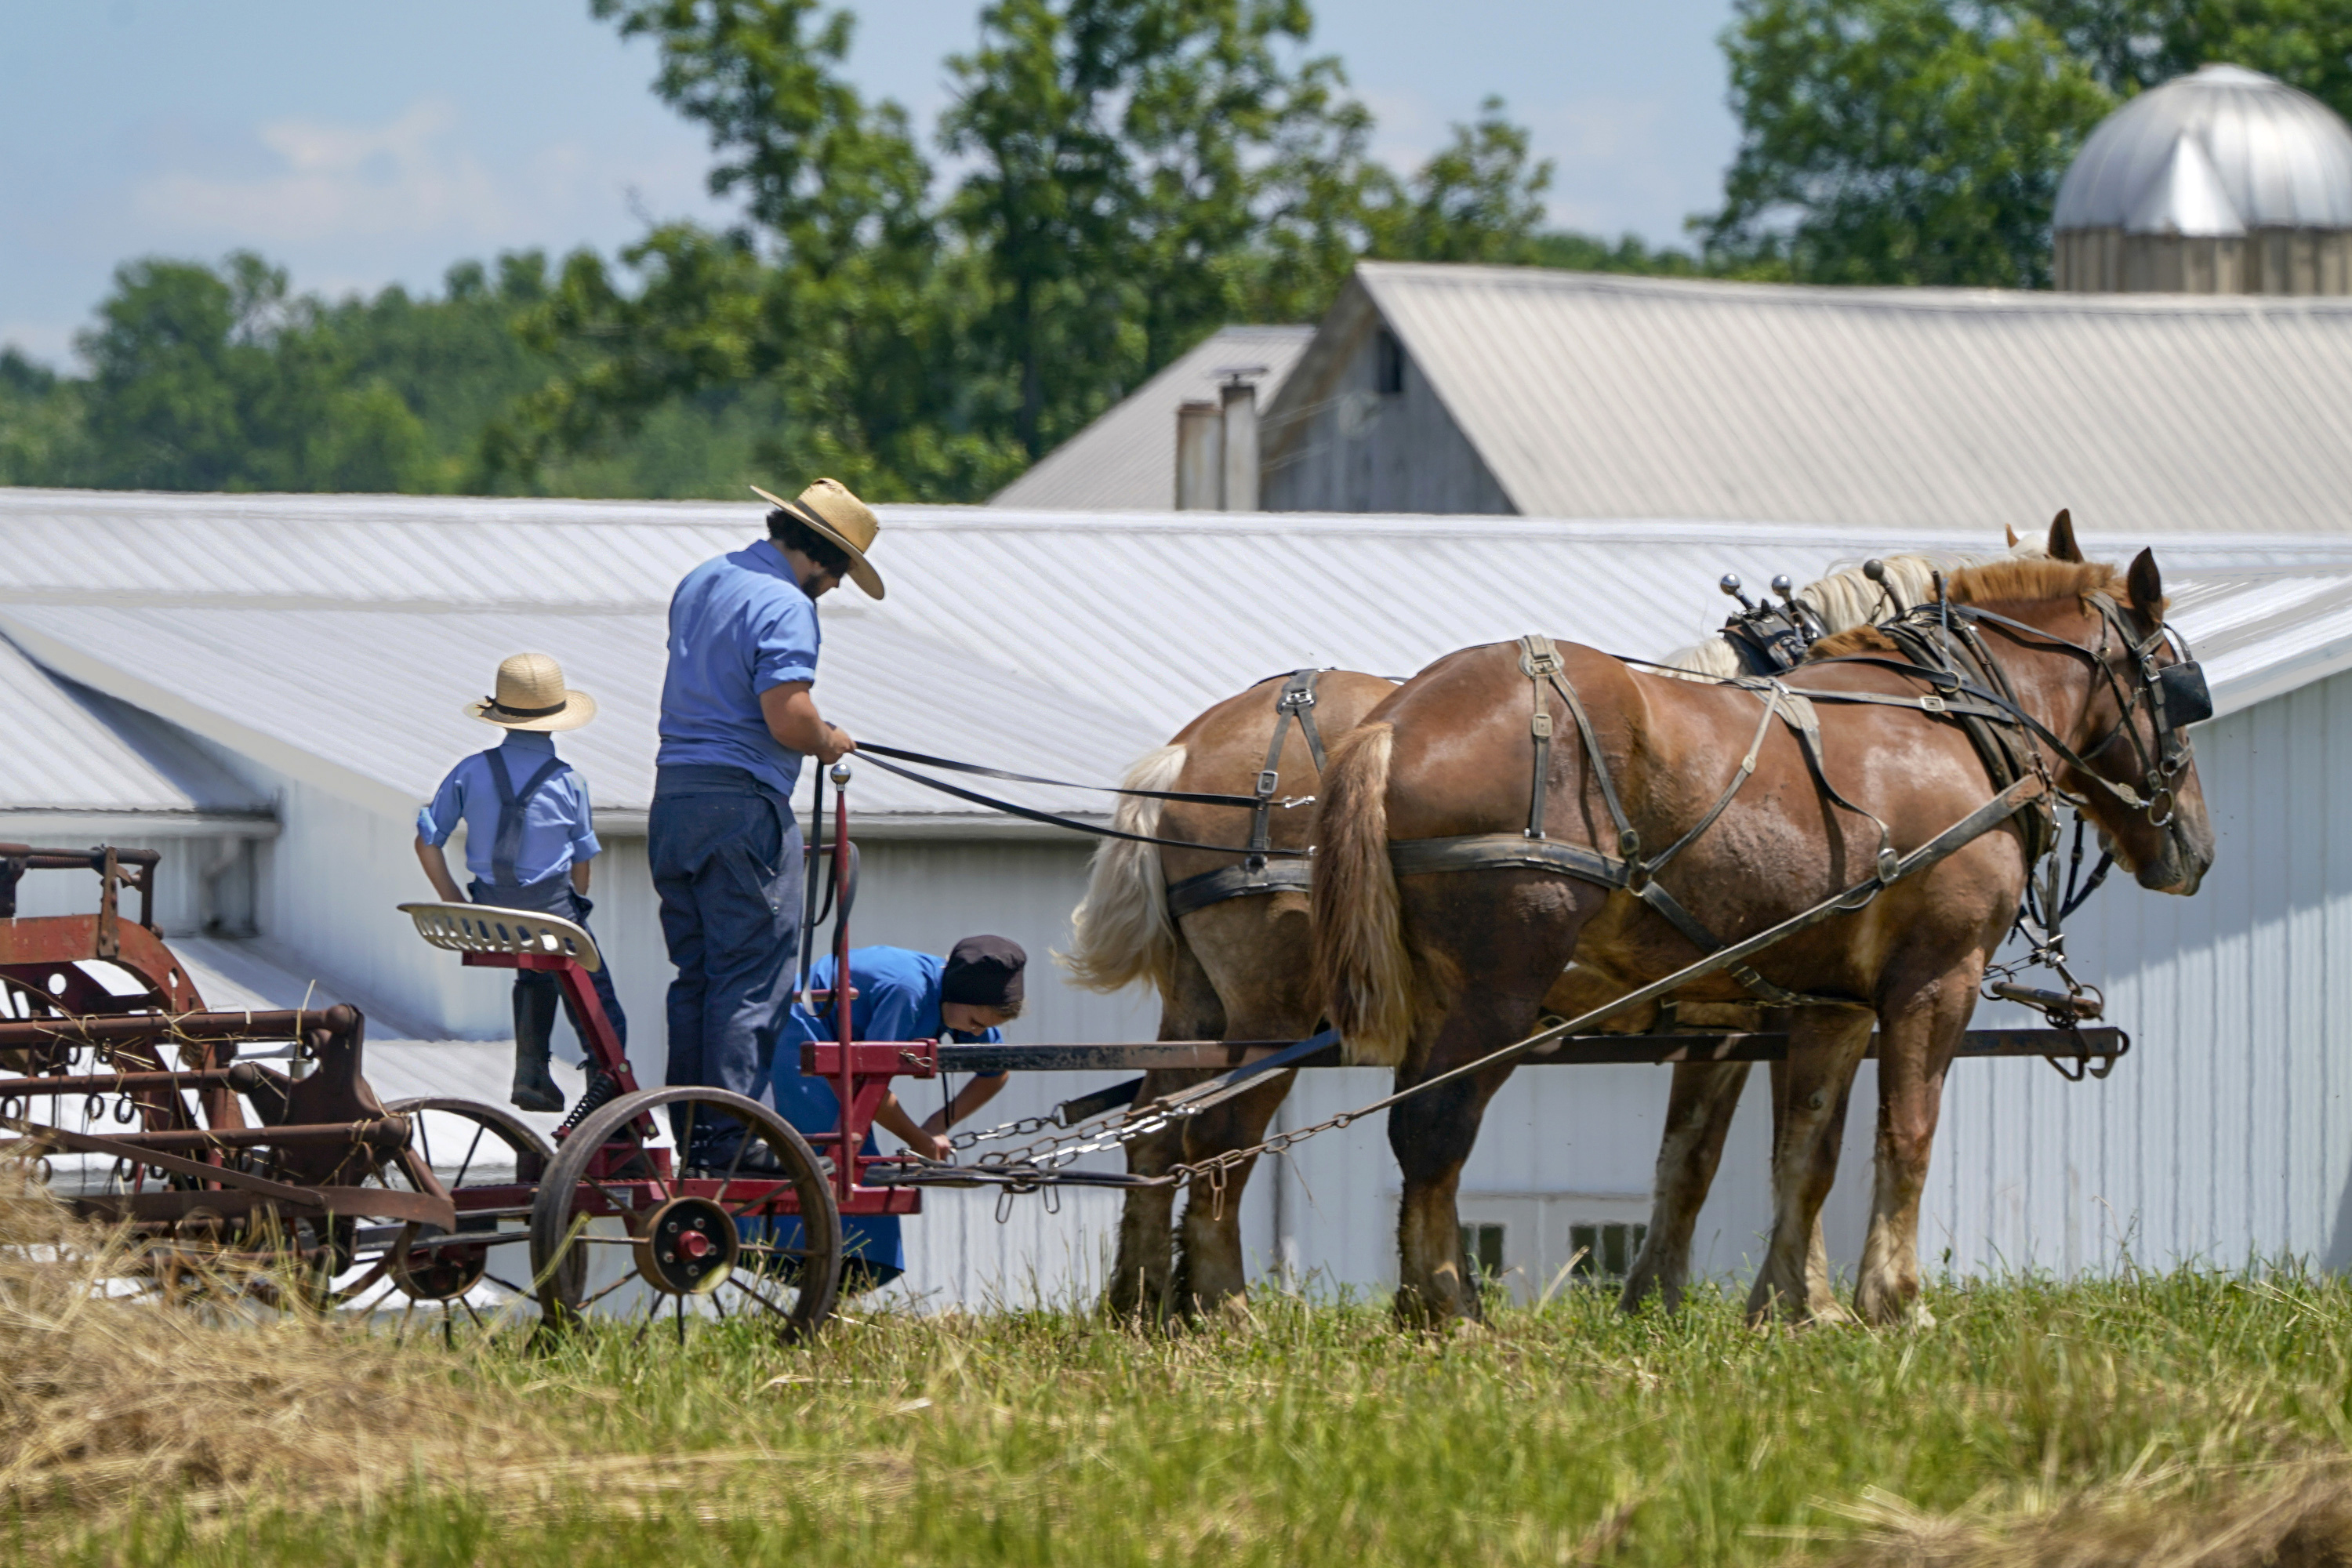 People in Amish country prepare a horse team to work on a farm in Pulaski, Pennsylvania, in June. The vaccination drive is lagging far behind in many Amish communities across the U.S. following a wave of virus outbreaks that swept through their churches and homes during the past year.